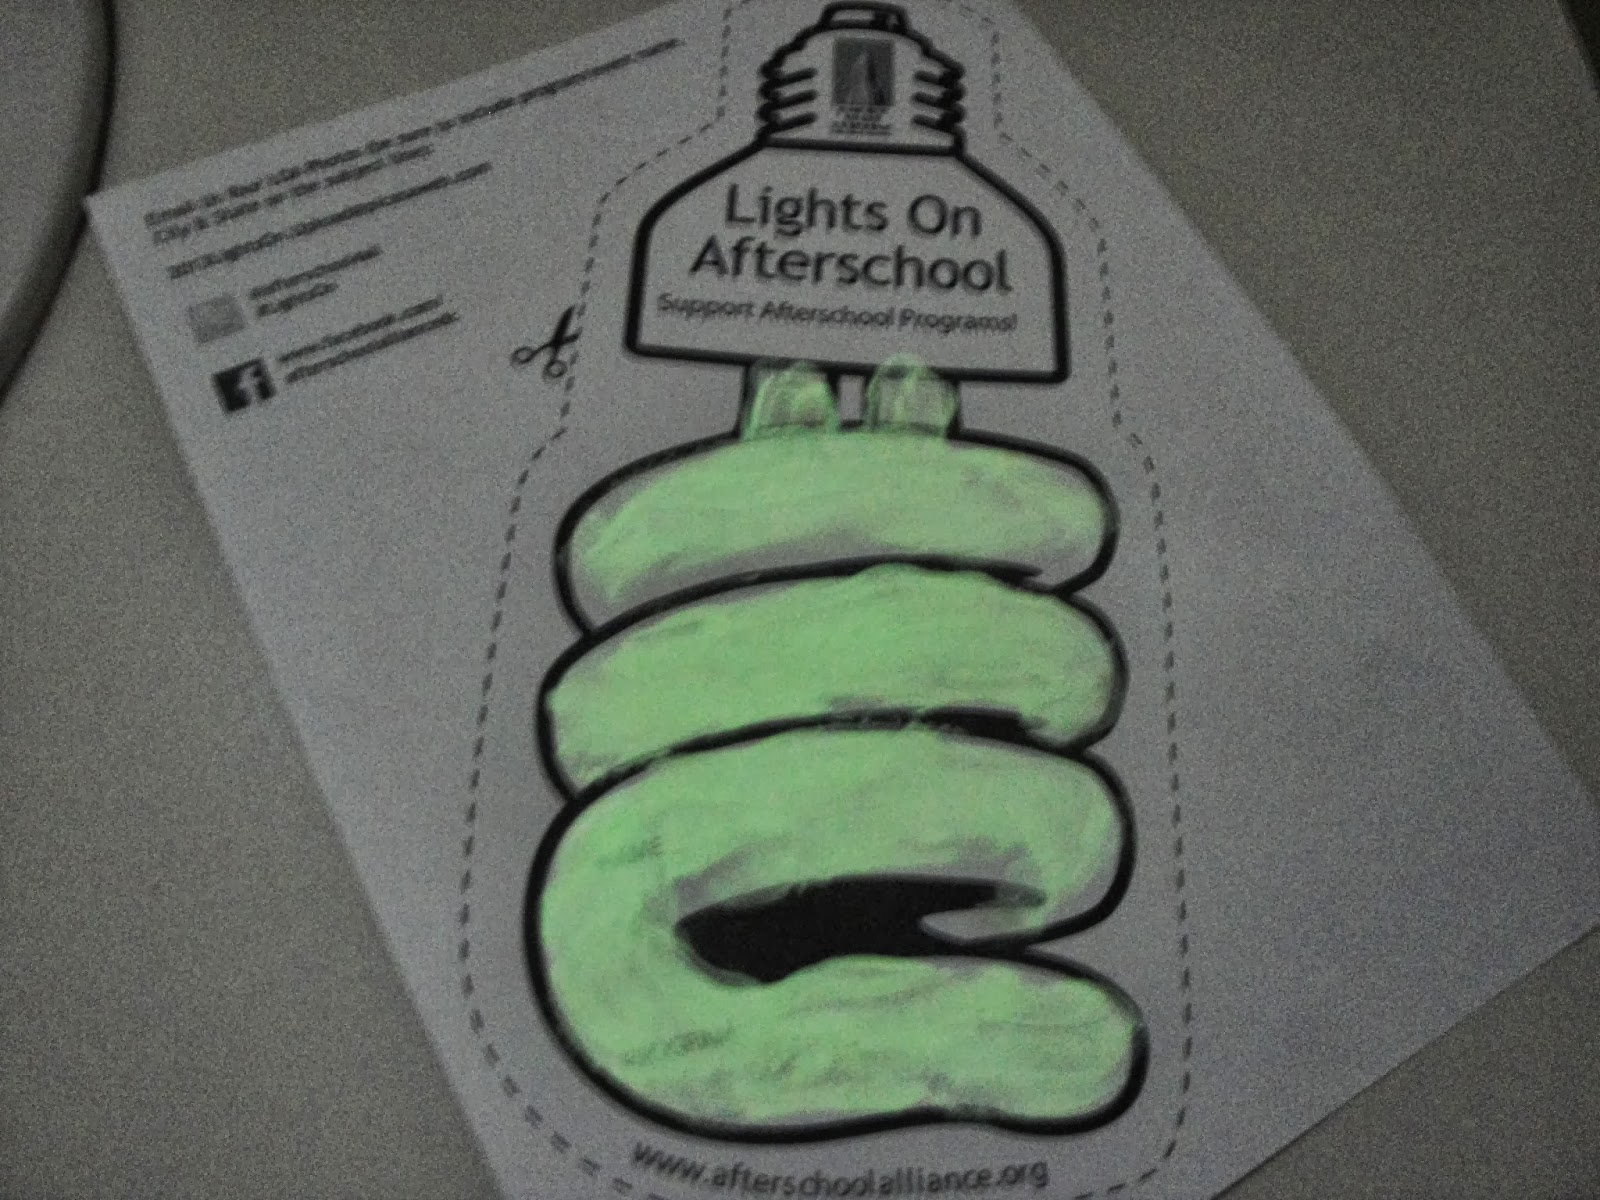 ... Of GLOWING In Response To LIGHT Energy. A Light Bulb Excites Atoms In  The Phosphor, Causing Them To Store Light Energy. When We Turned The Lights  OFF To ...